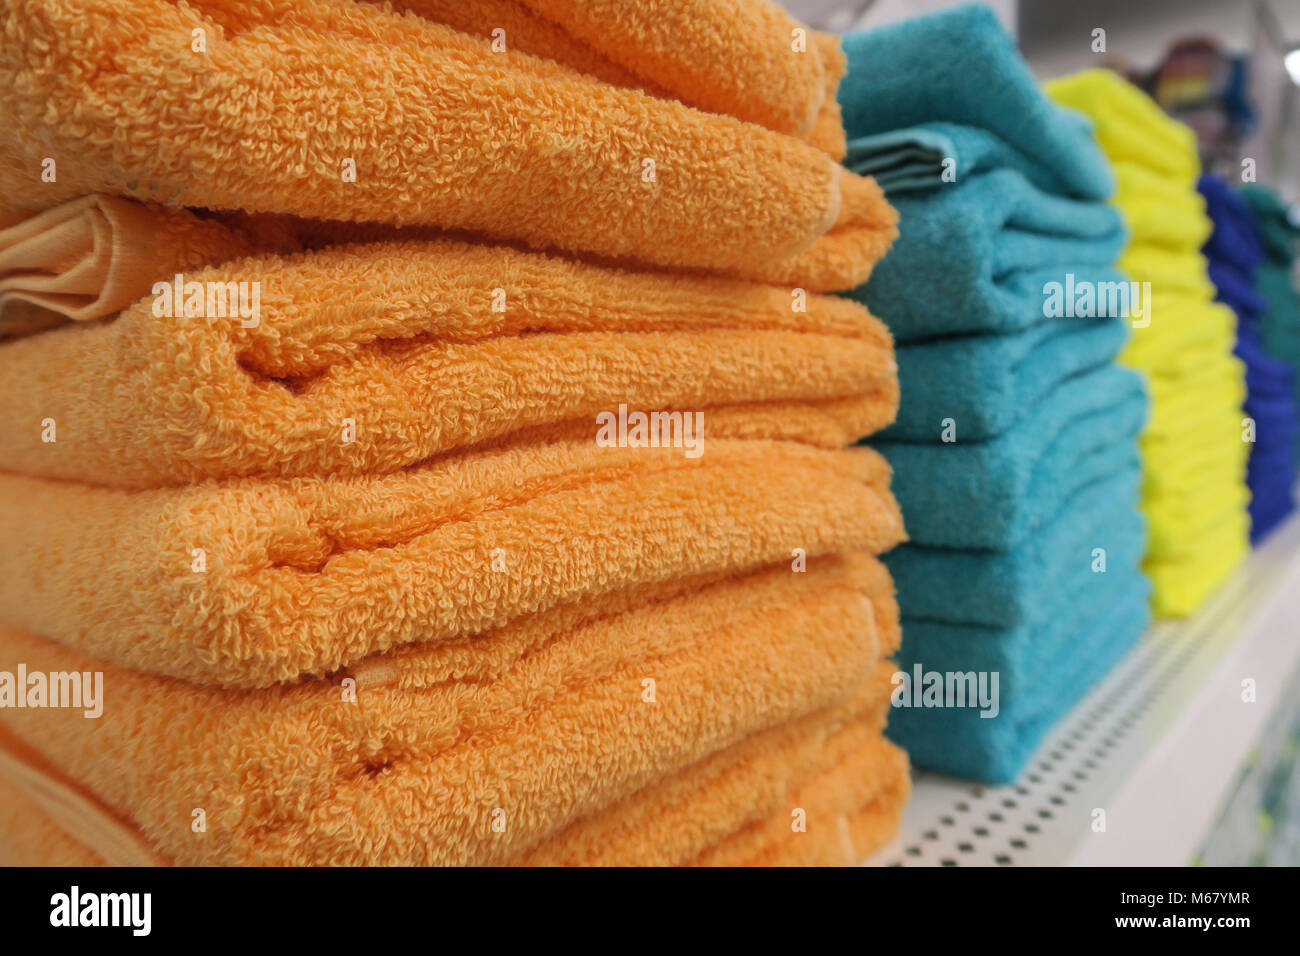 towels on sale